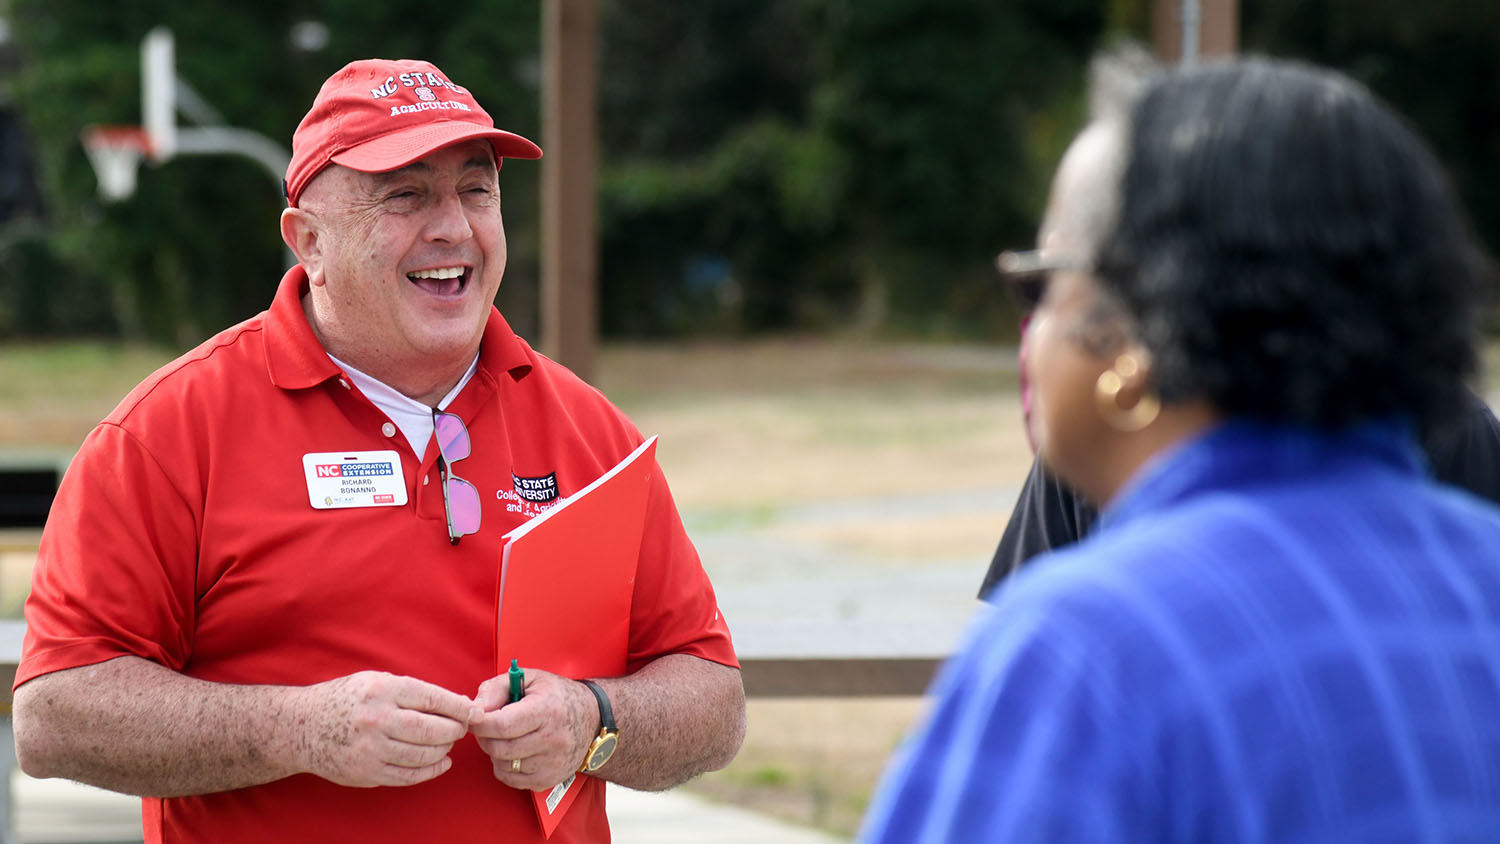 Rich Bonanno speaking to a person at an outdoor event